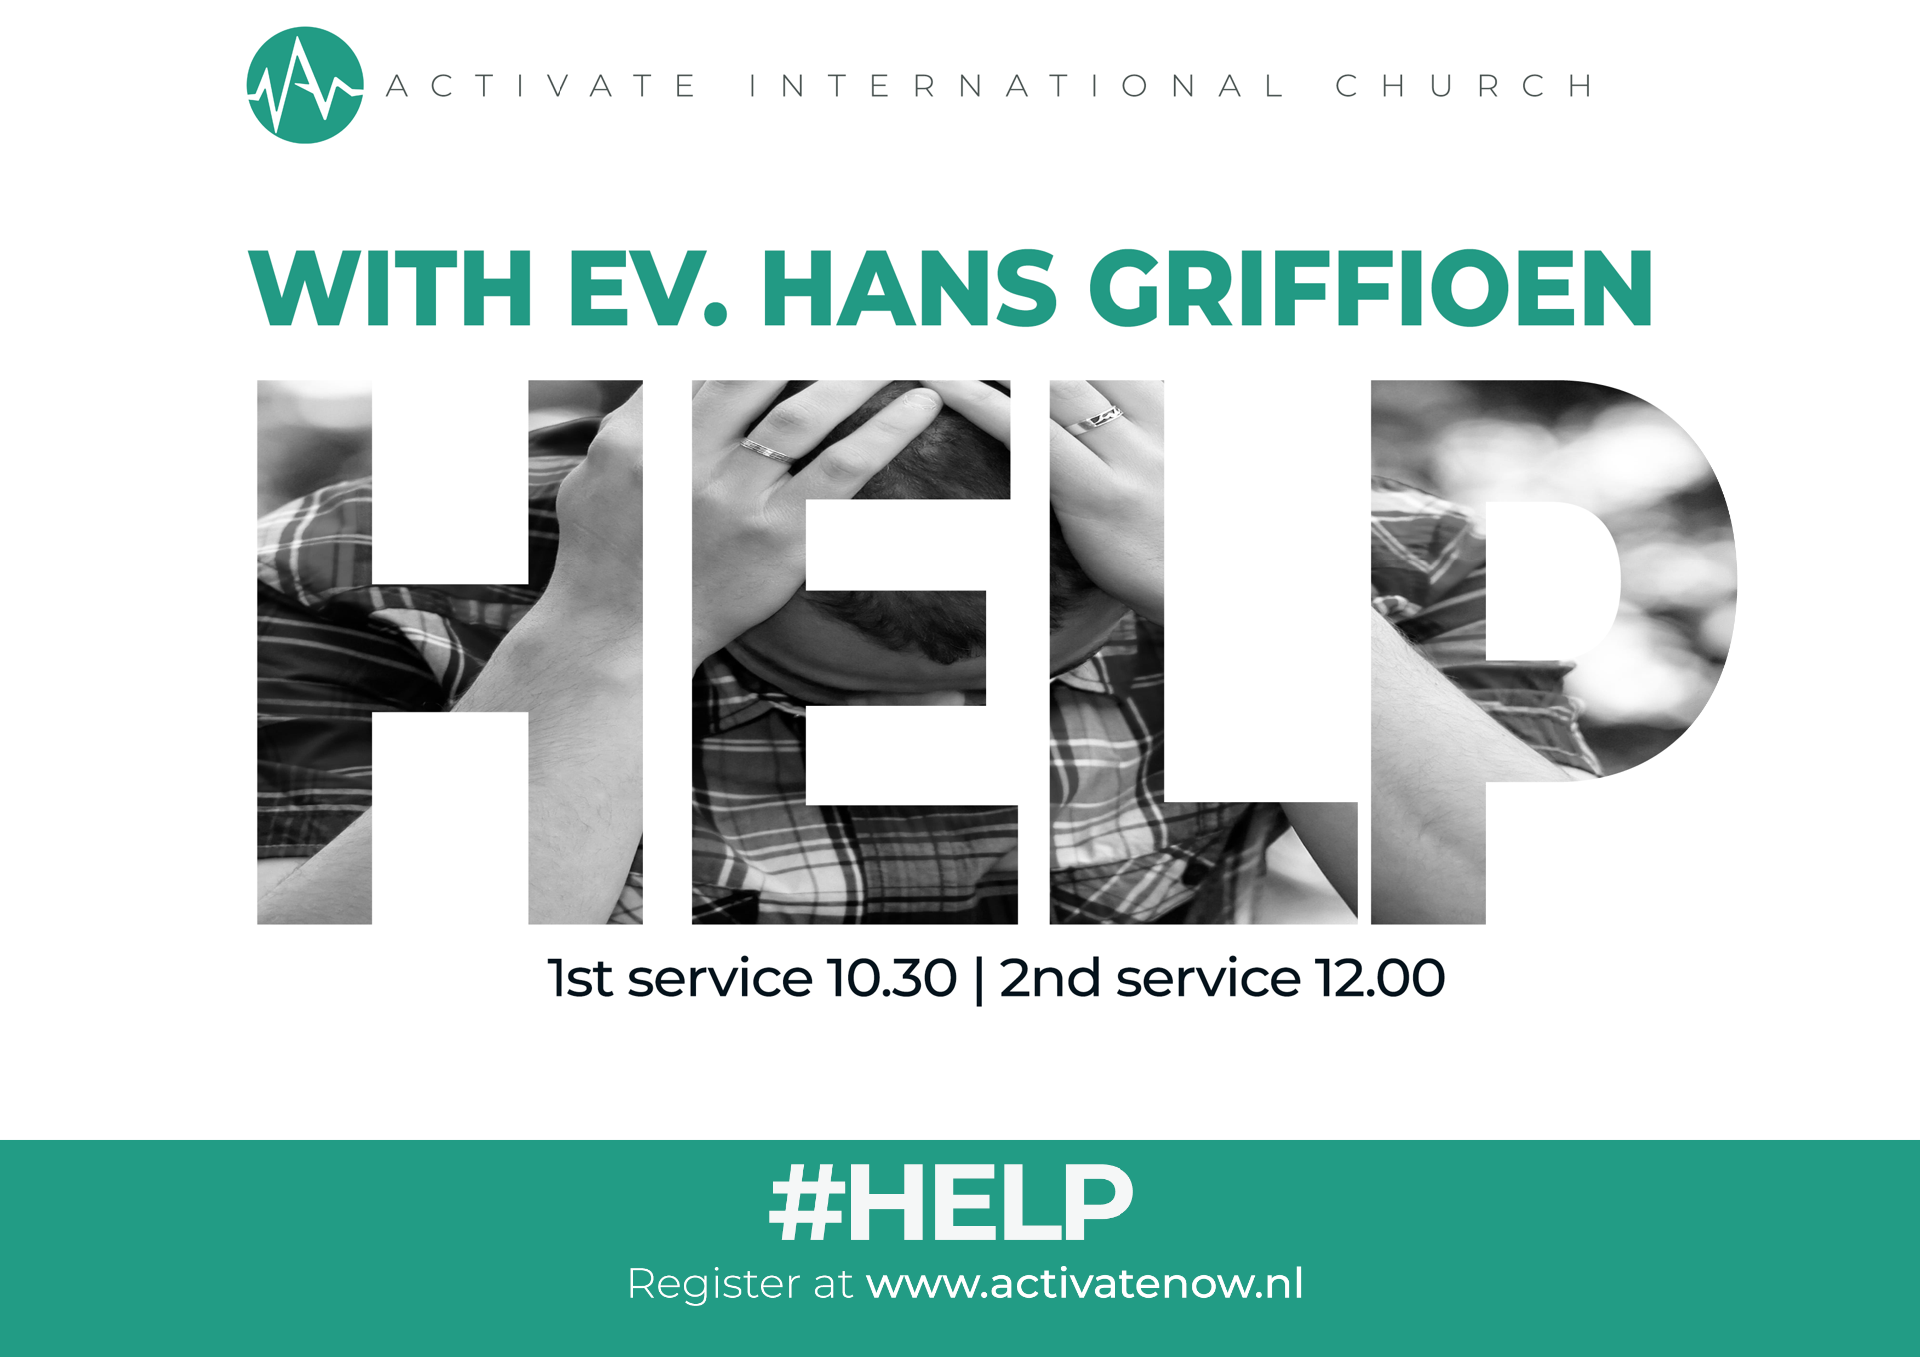 Services NL: 10.30 | ENG: 12.00